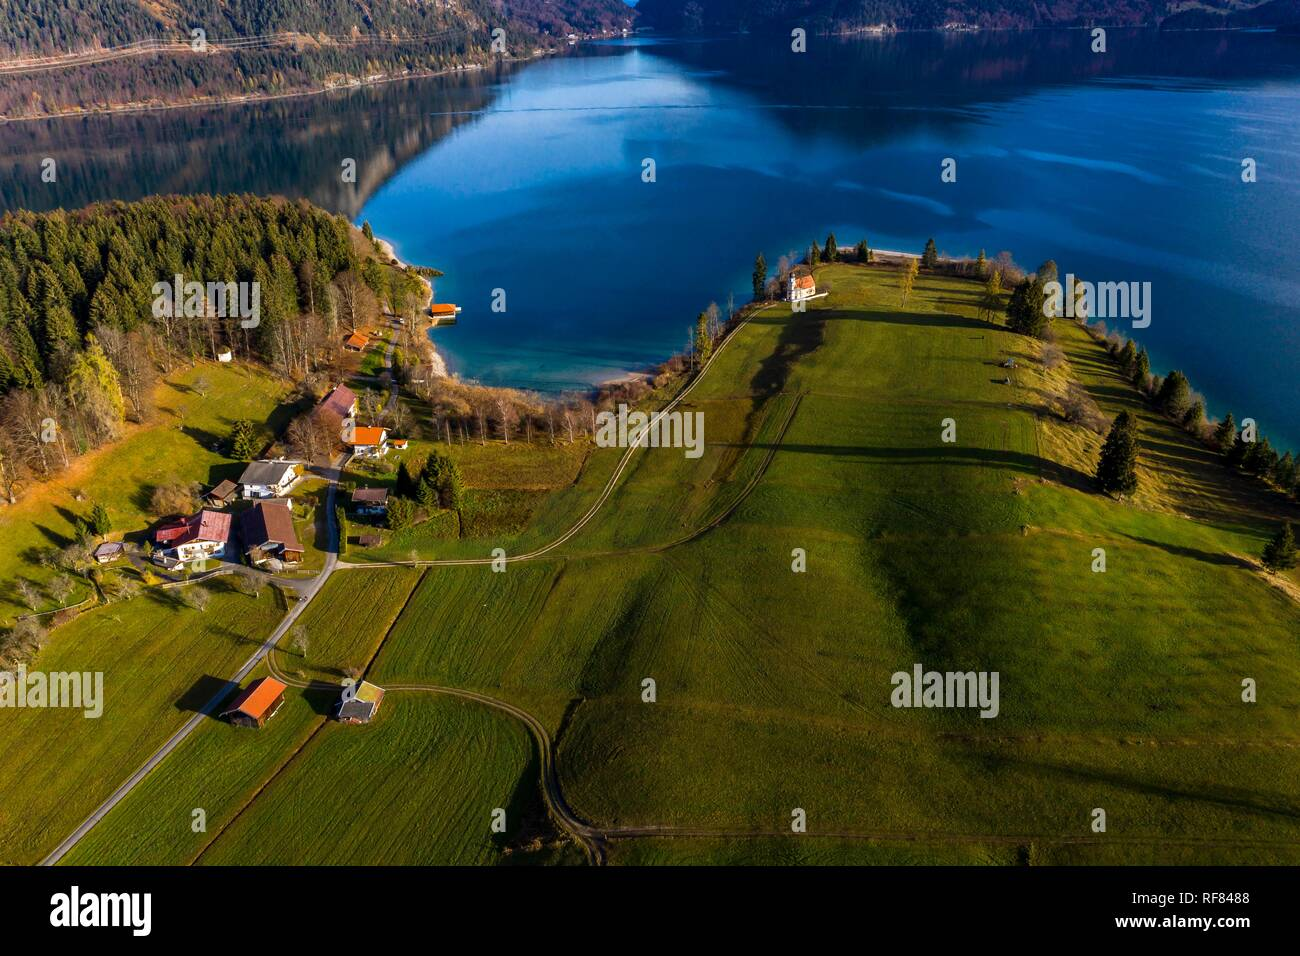 Drone shot, Walchensee, Upper Bavaria, Bavaria, Germany Stock Photo